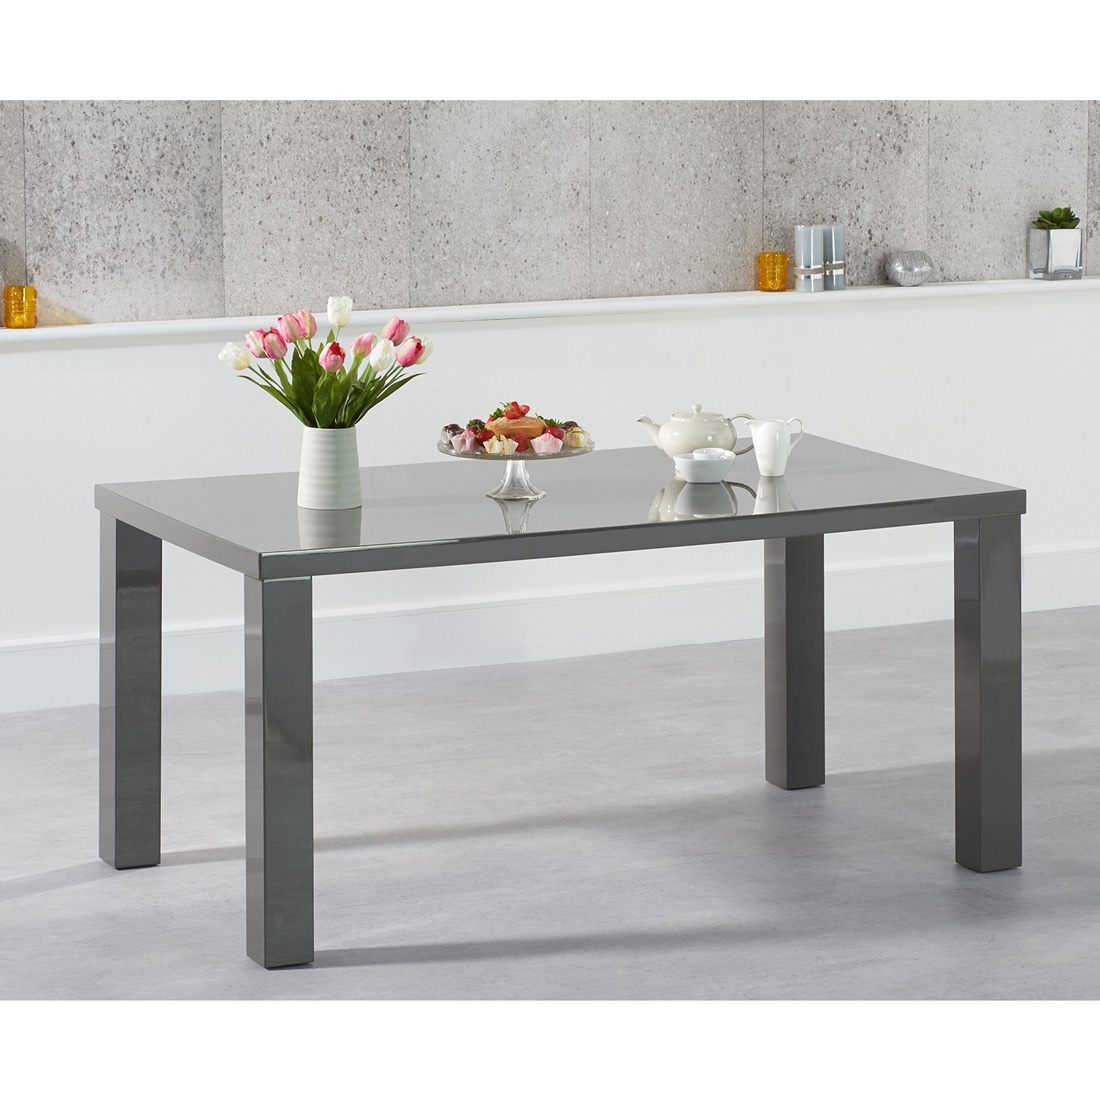 Luna Dark Grey Gloss Dining Table - Rectangular 120 - 200 cm Solid Hardwood (Size: Small Table 120 cm)